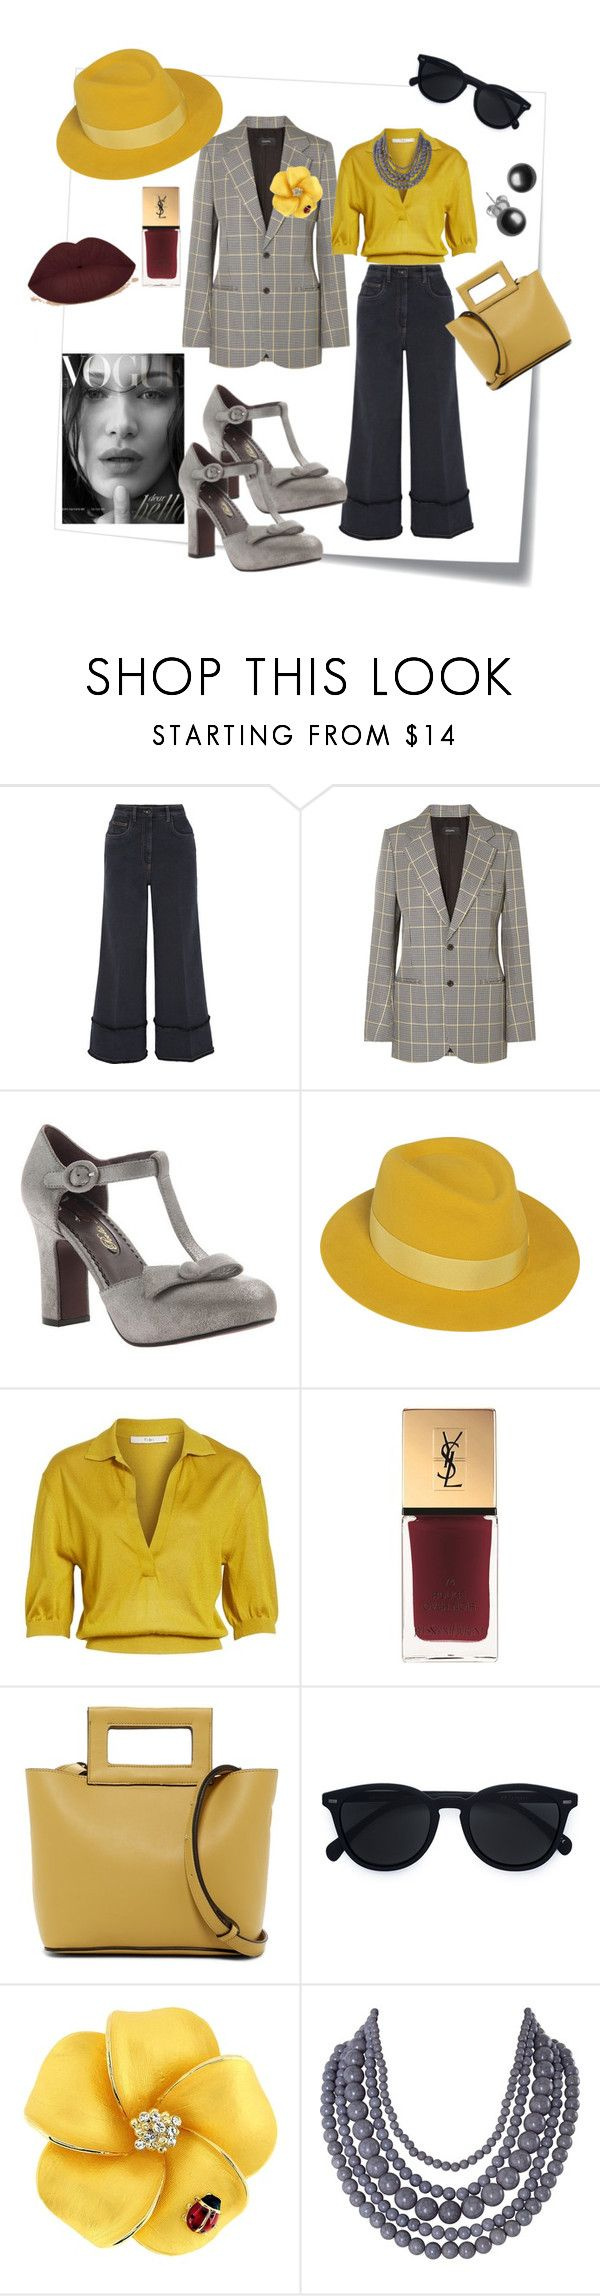 """""""Here's looking at you kid"""" by mshunt ❤ liked on Polyvore featuring Post-It, Miu Miu, Joseph, Poetic Licence, Maison Michel, TIBI, Yves Saint Laurent, French Connection, Le Specs and Humble Chic"""